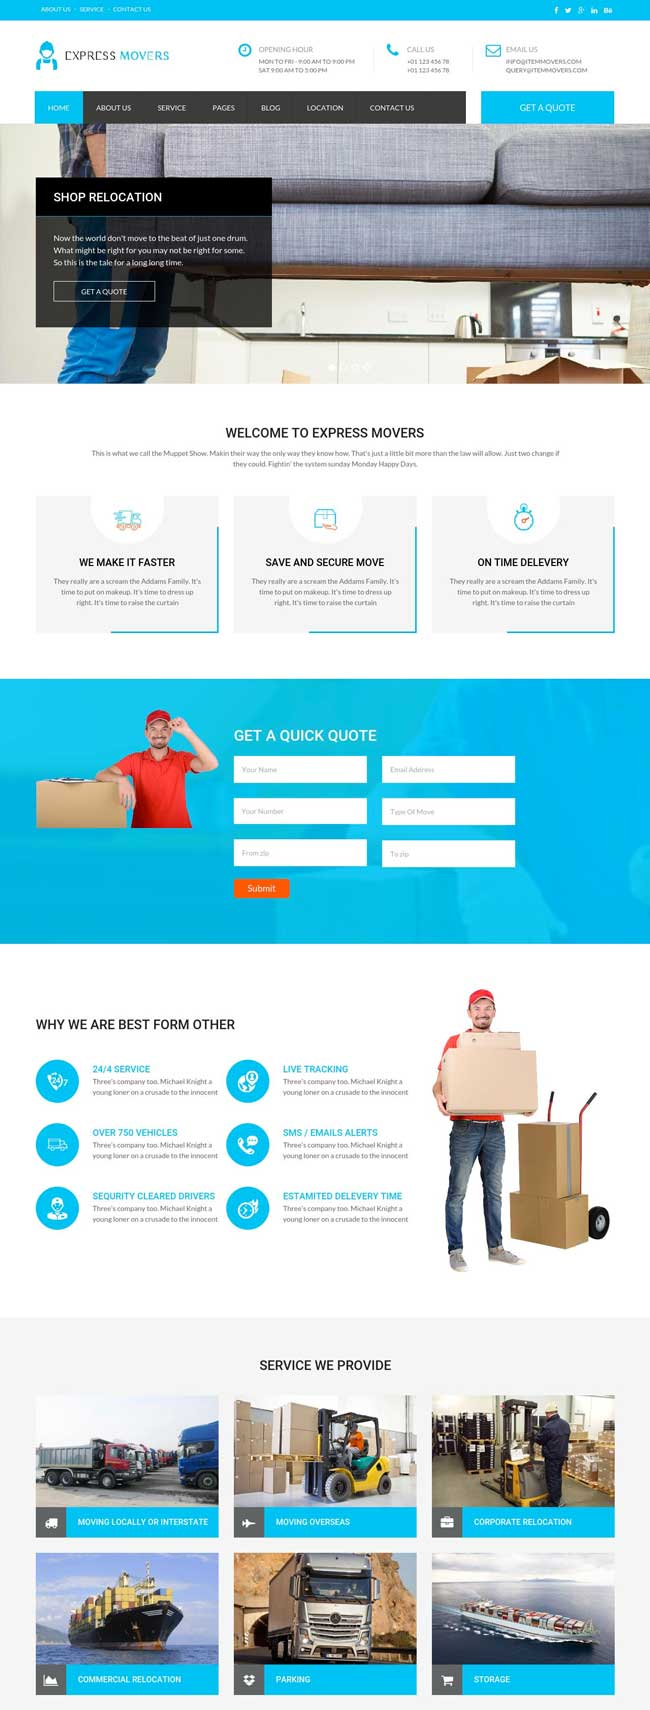 Express-Movers-Moving-Company-WordPress-Theme